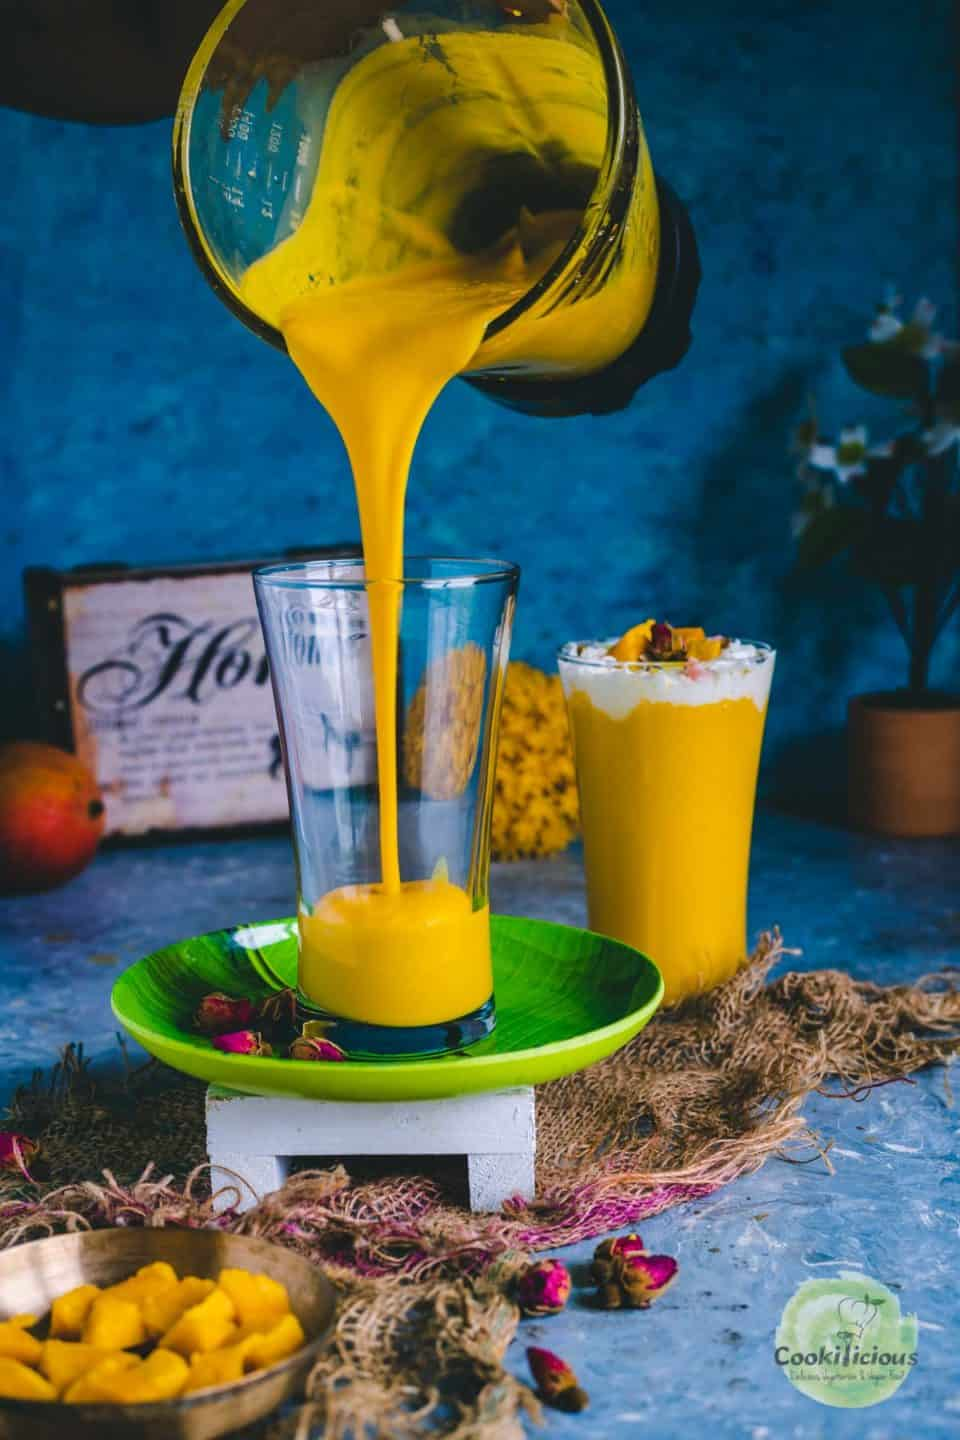 Mango milkshake being poured into a glass from a blender jar